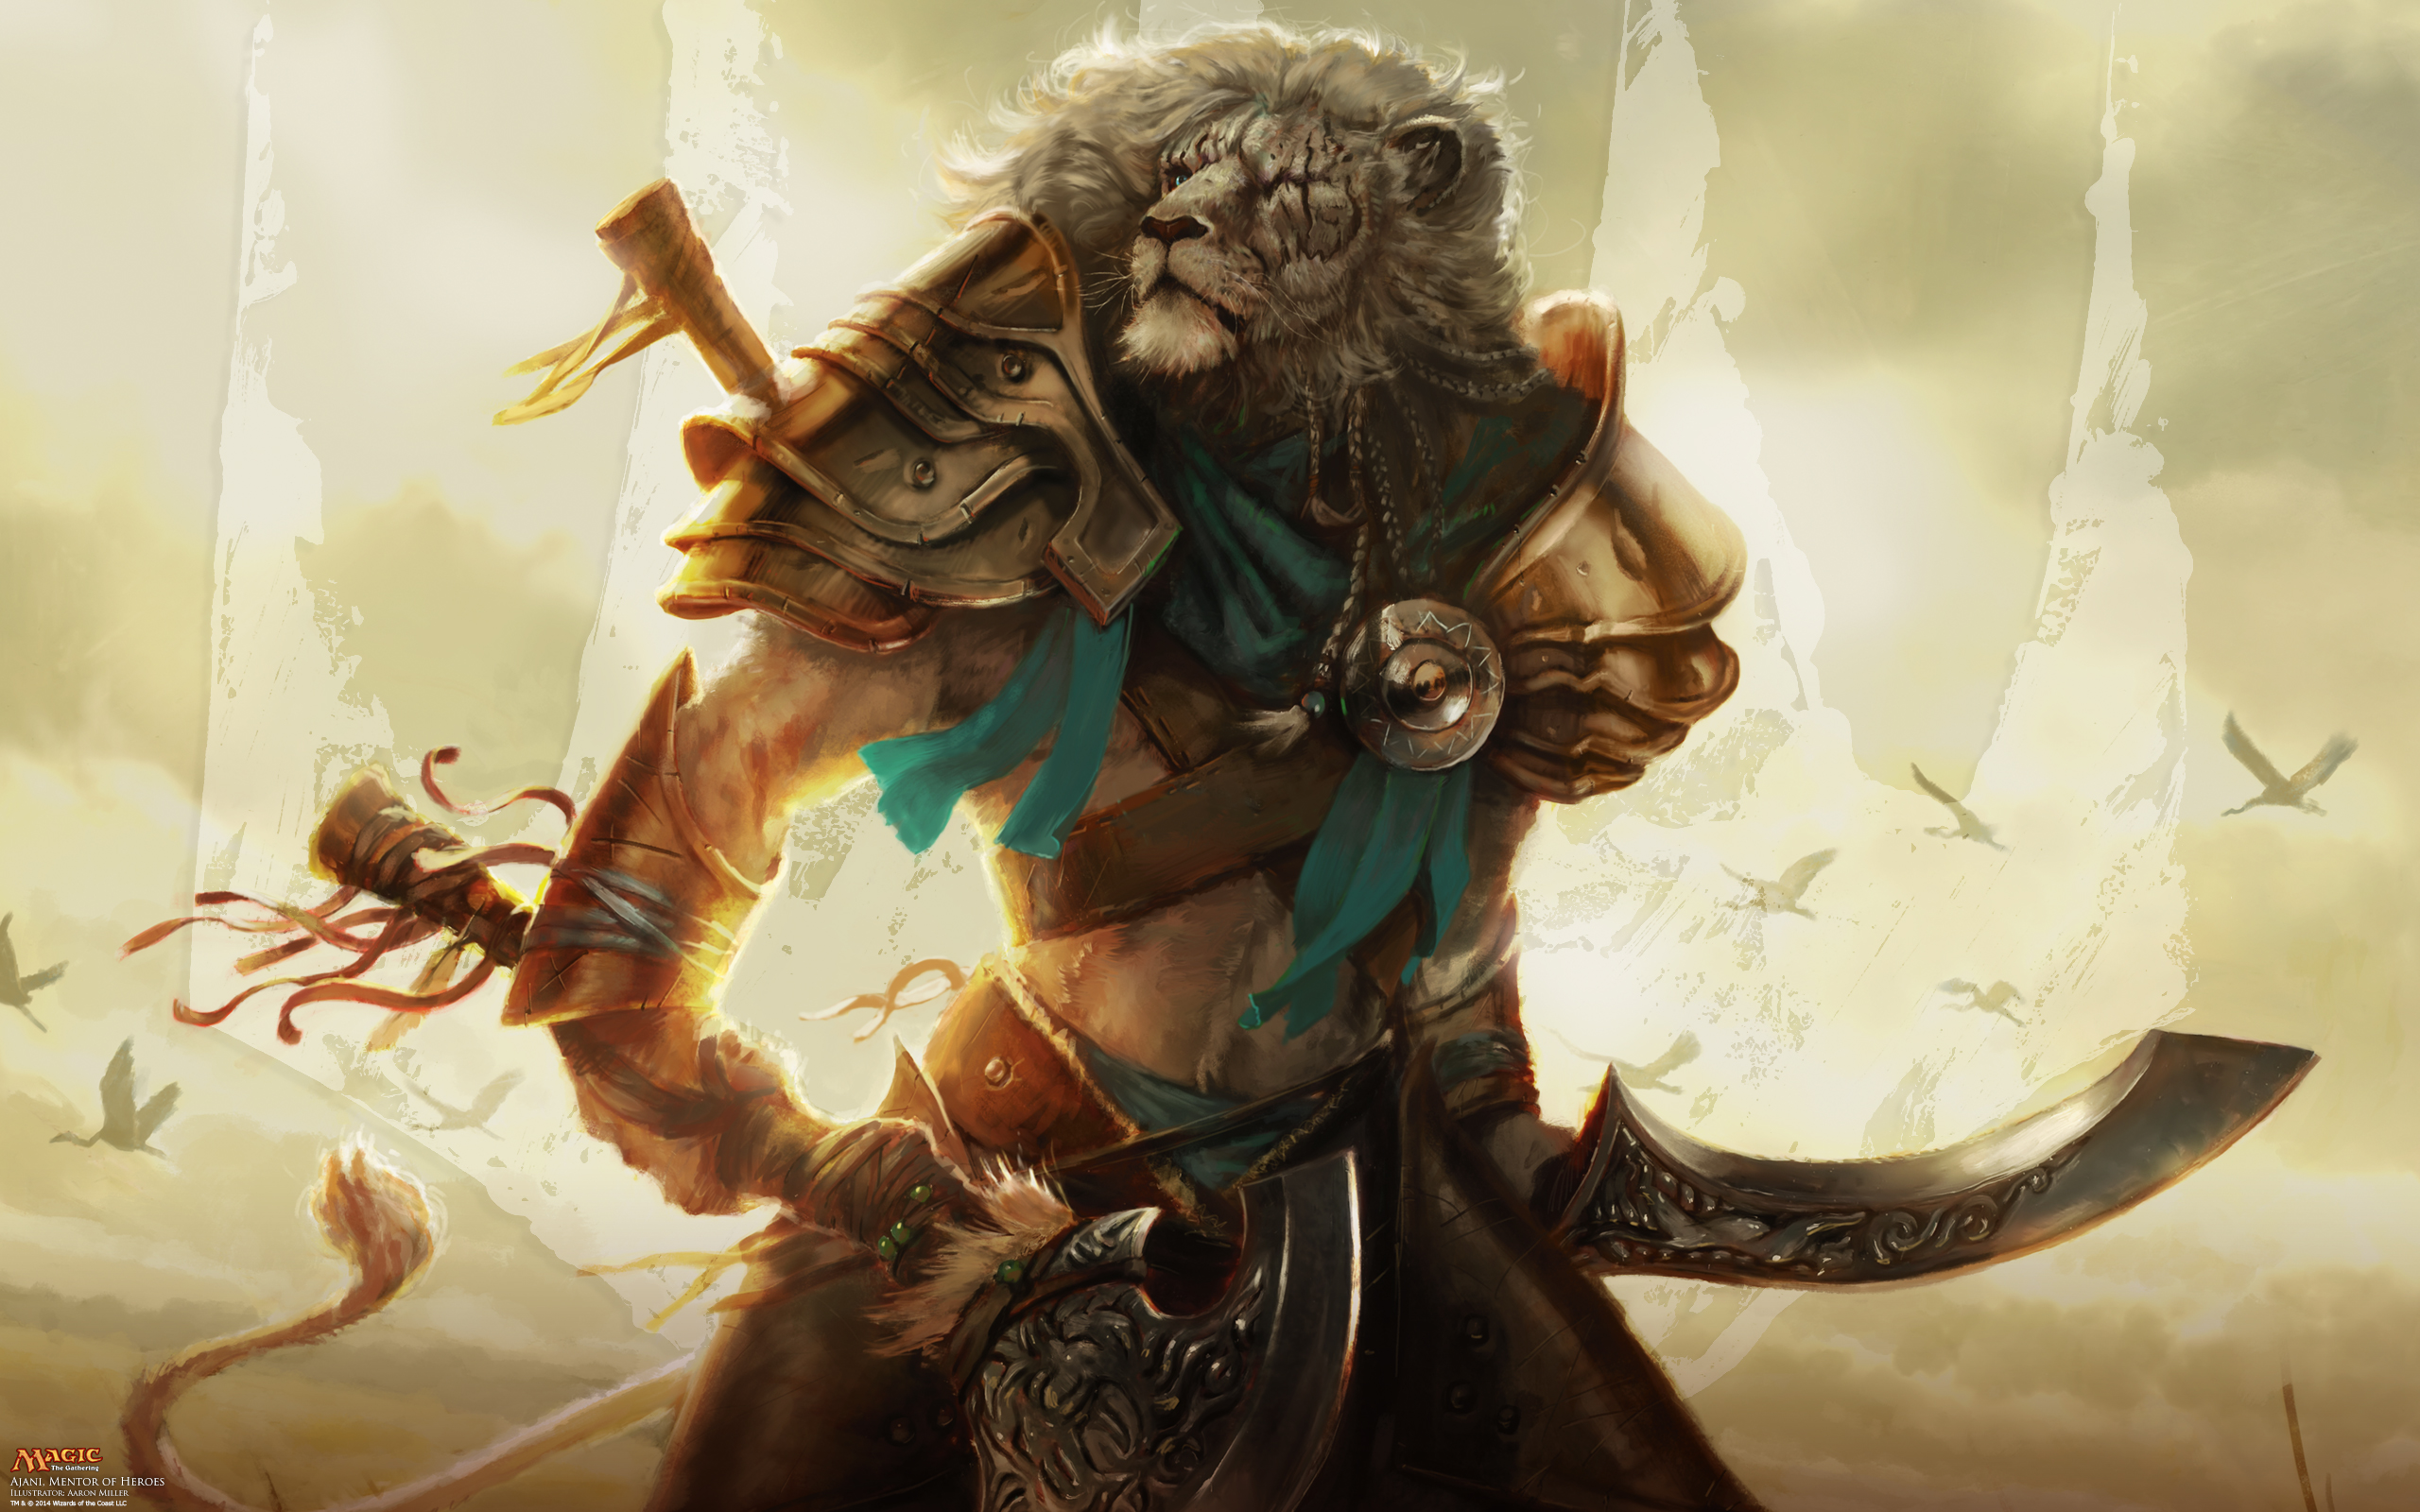 magic the gathering wallpaper  Wallpaper of the Week: Ajani, Mentor of Heroes | MAGIC: THE GATHERING